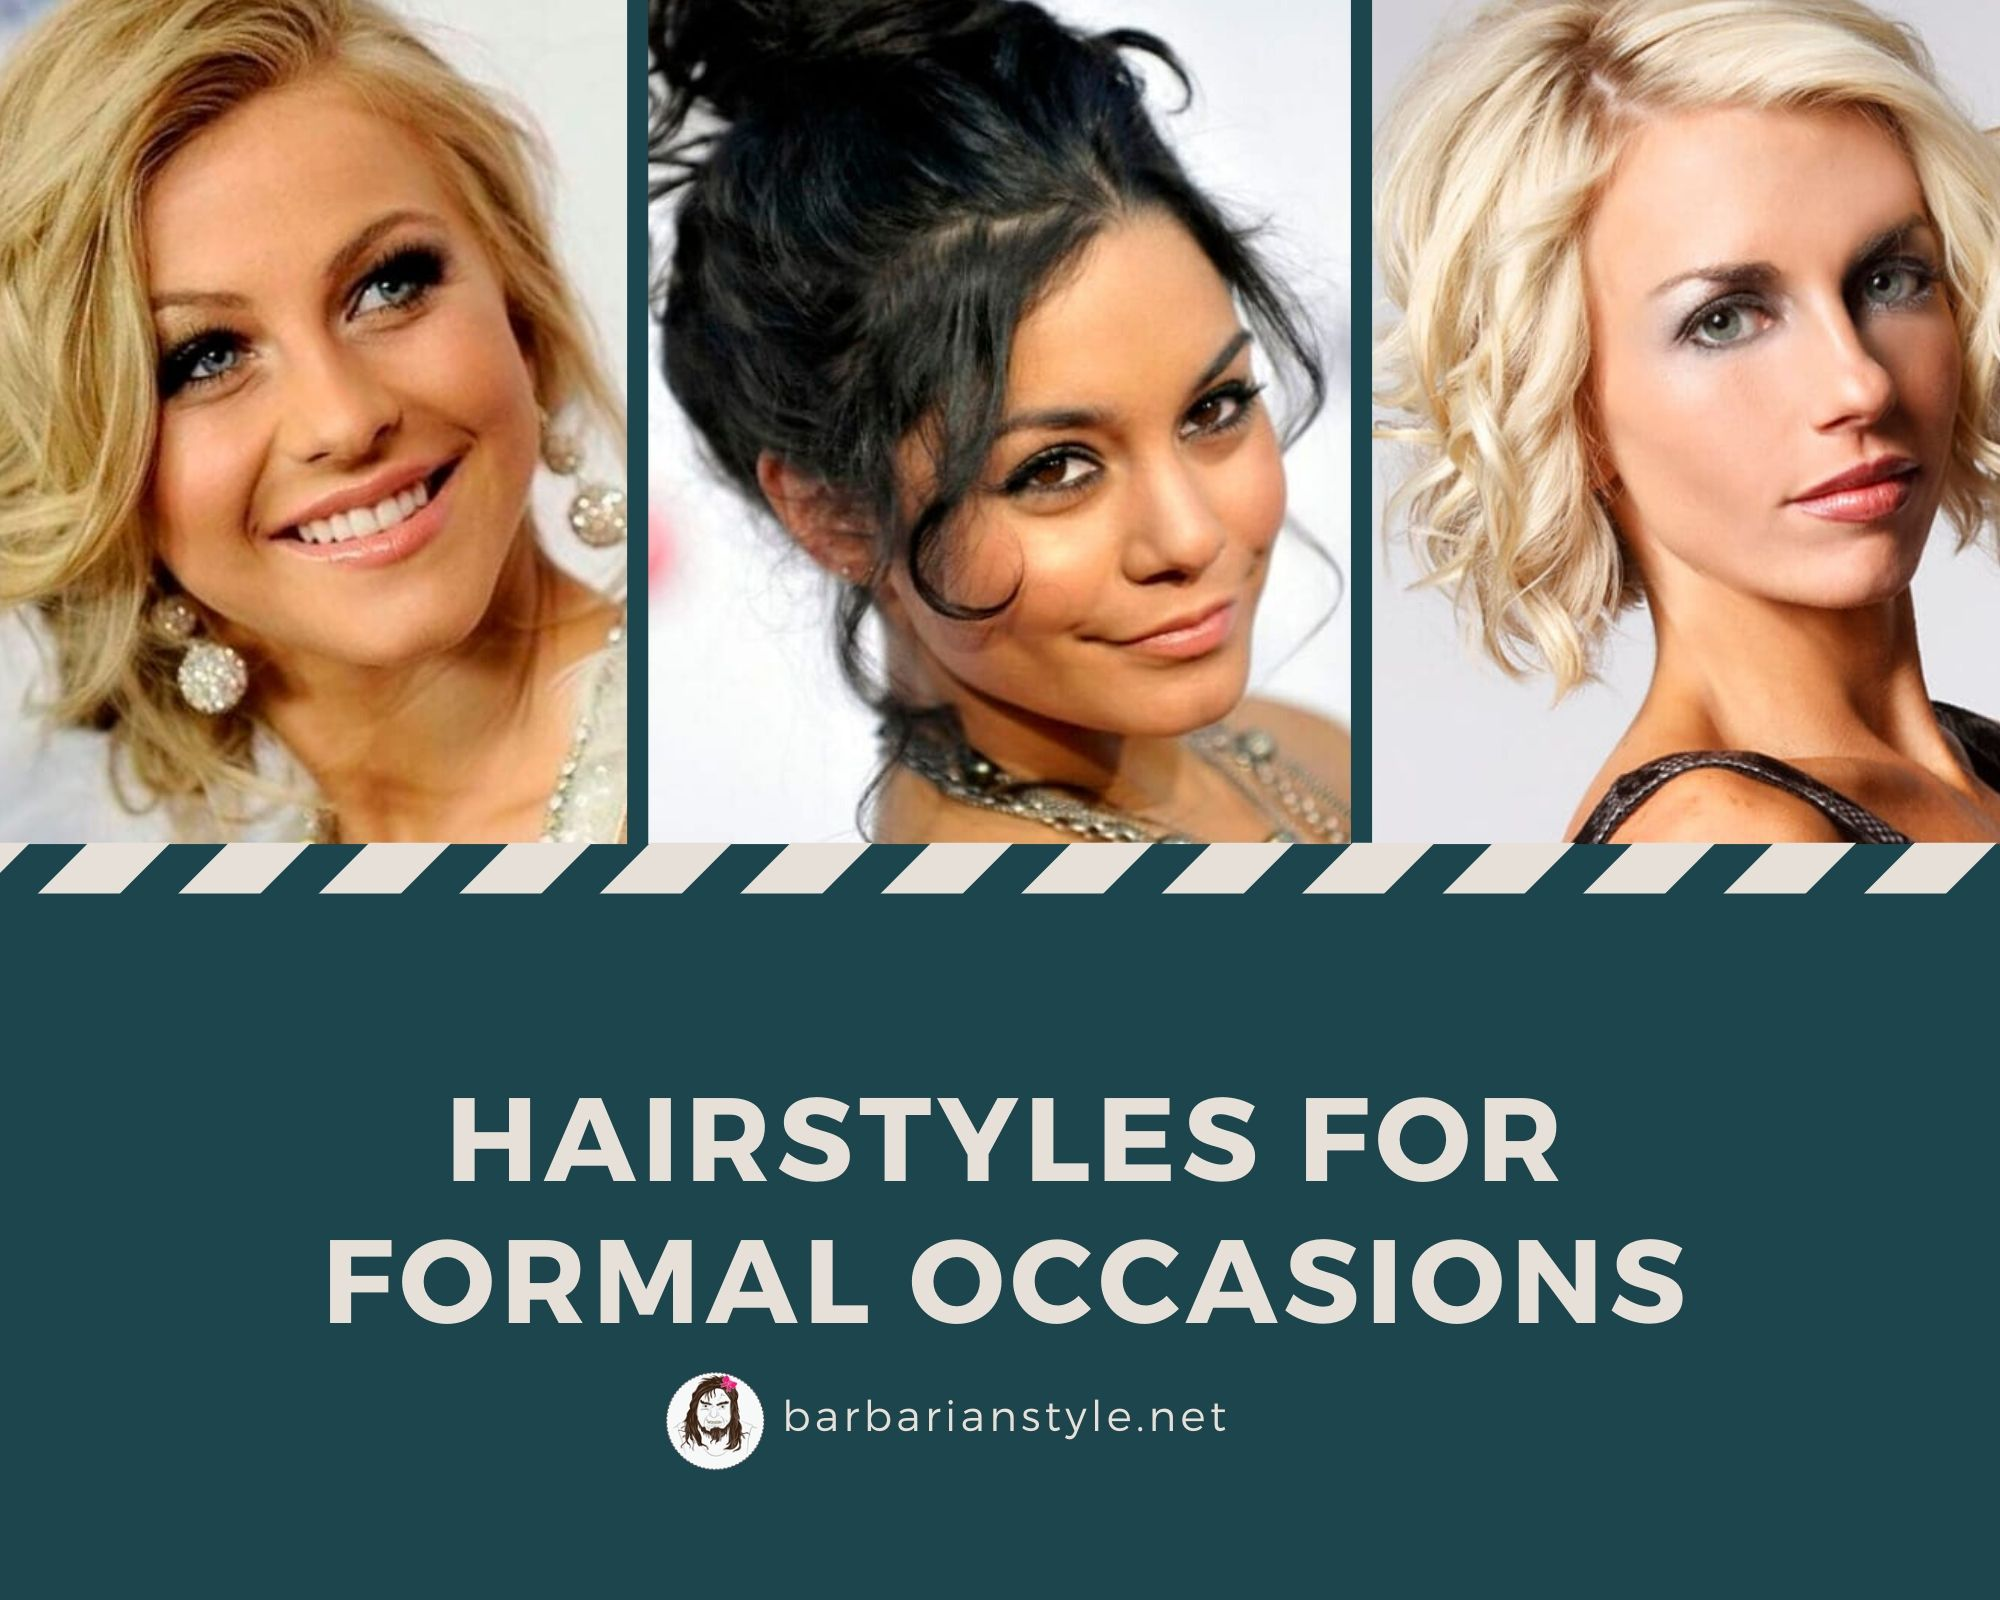 The Most Impressive Hairstyles For Formal Occasions